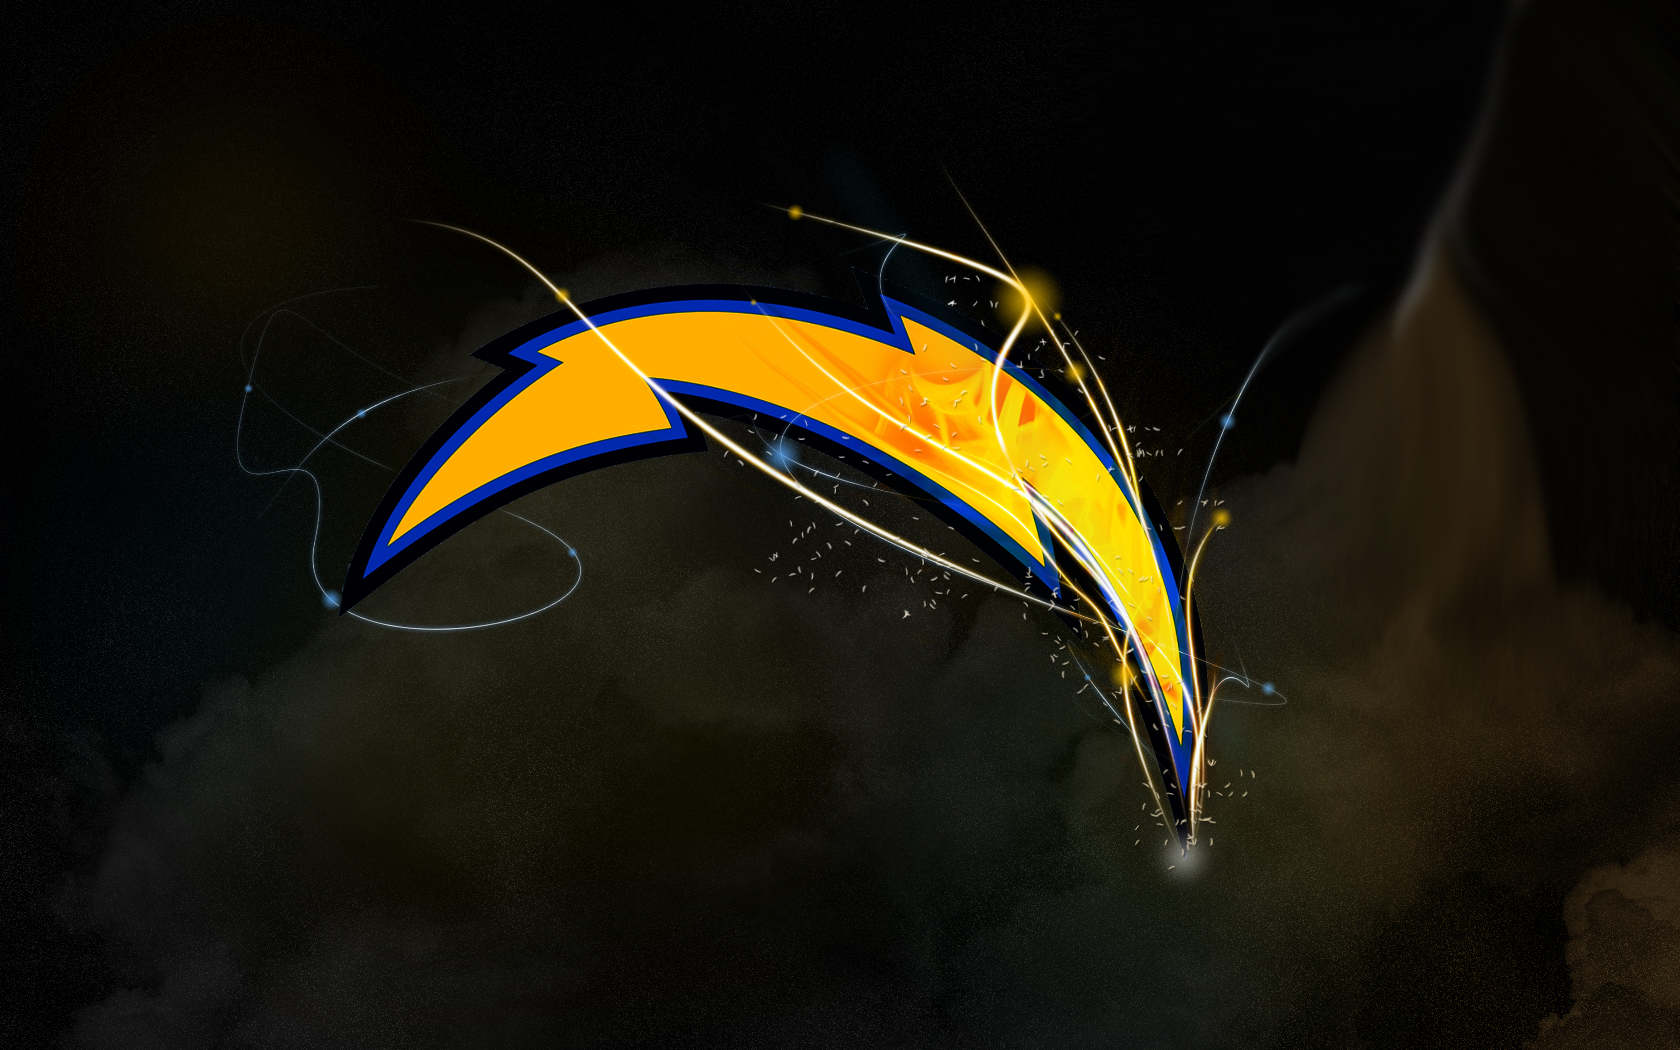 Chargers Bolt Wallpaper San diego chargers light bolt4 1680x1050